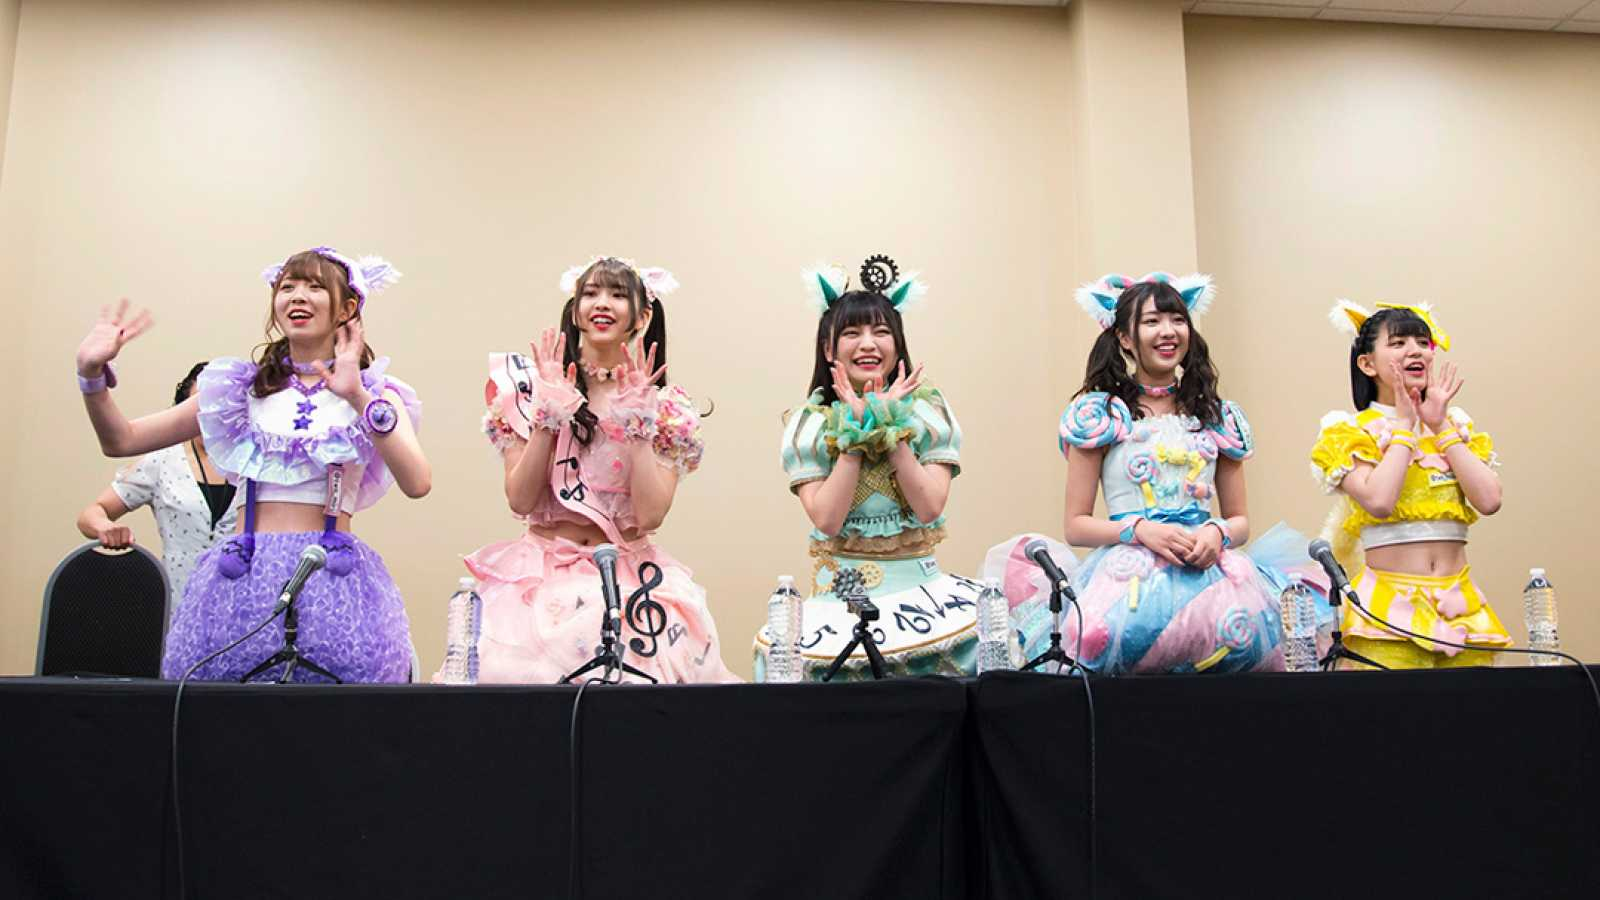 Q&A with Wasuta at Anime North 2019 © Avex Management/Stephen Echavia (J-rock North Promotions)